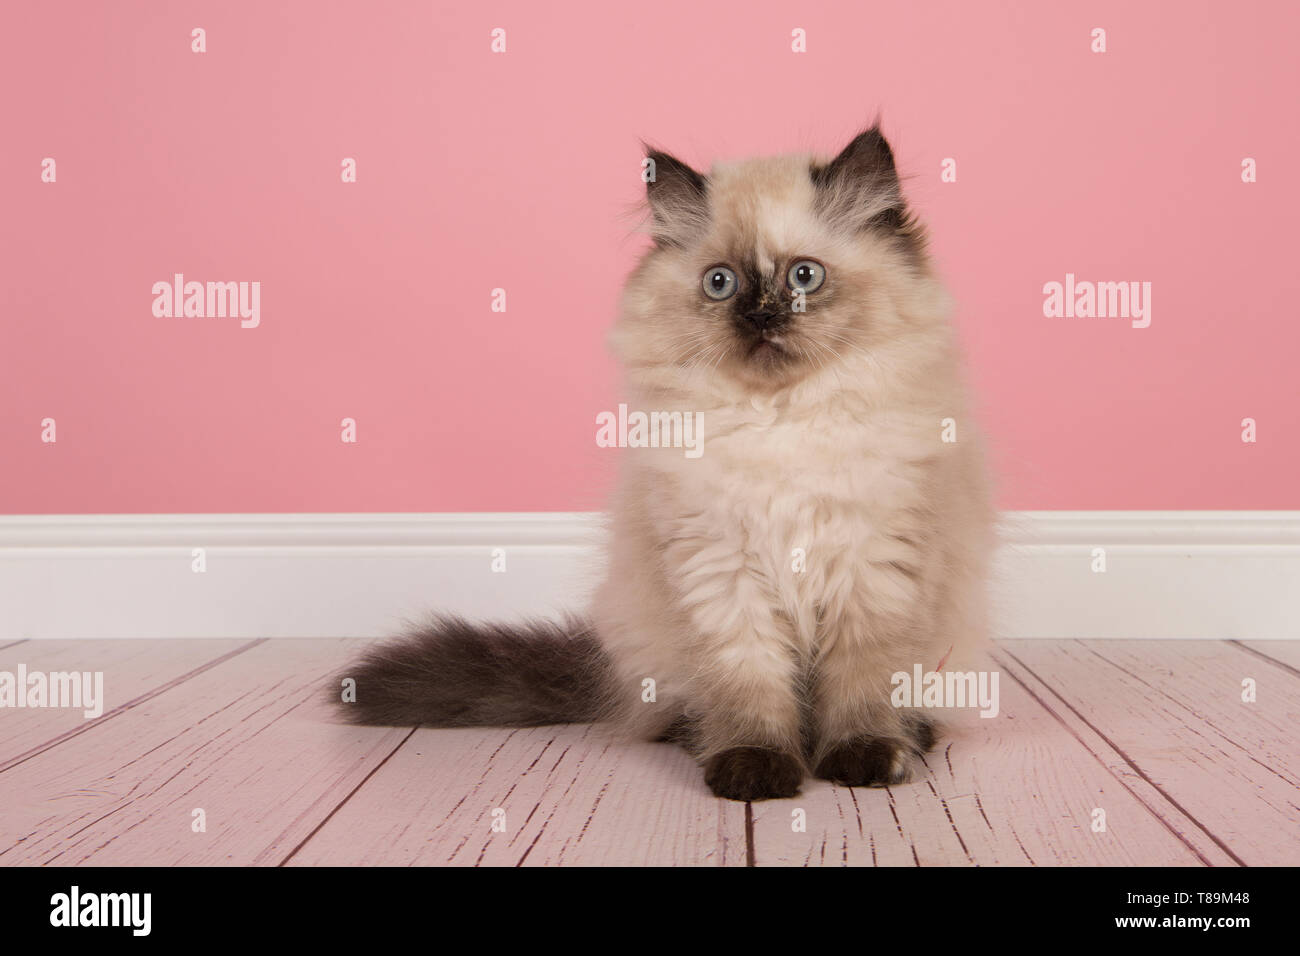 Seal Point Persian Longhair Kitten Sitting In A Pink Living